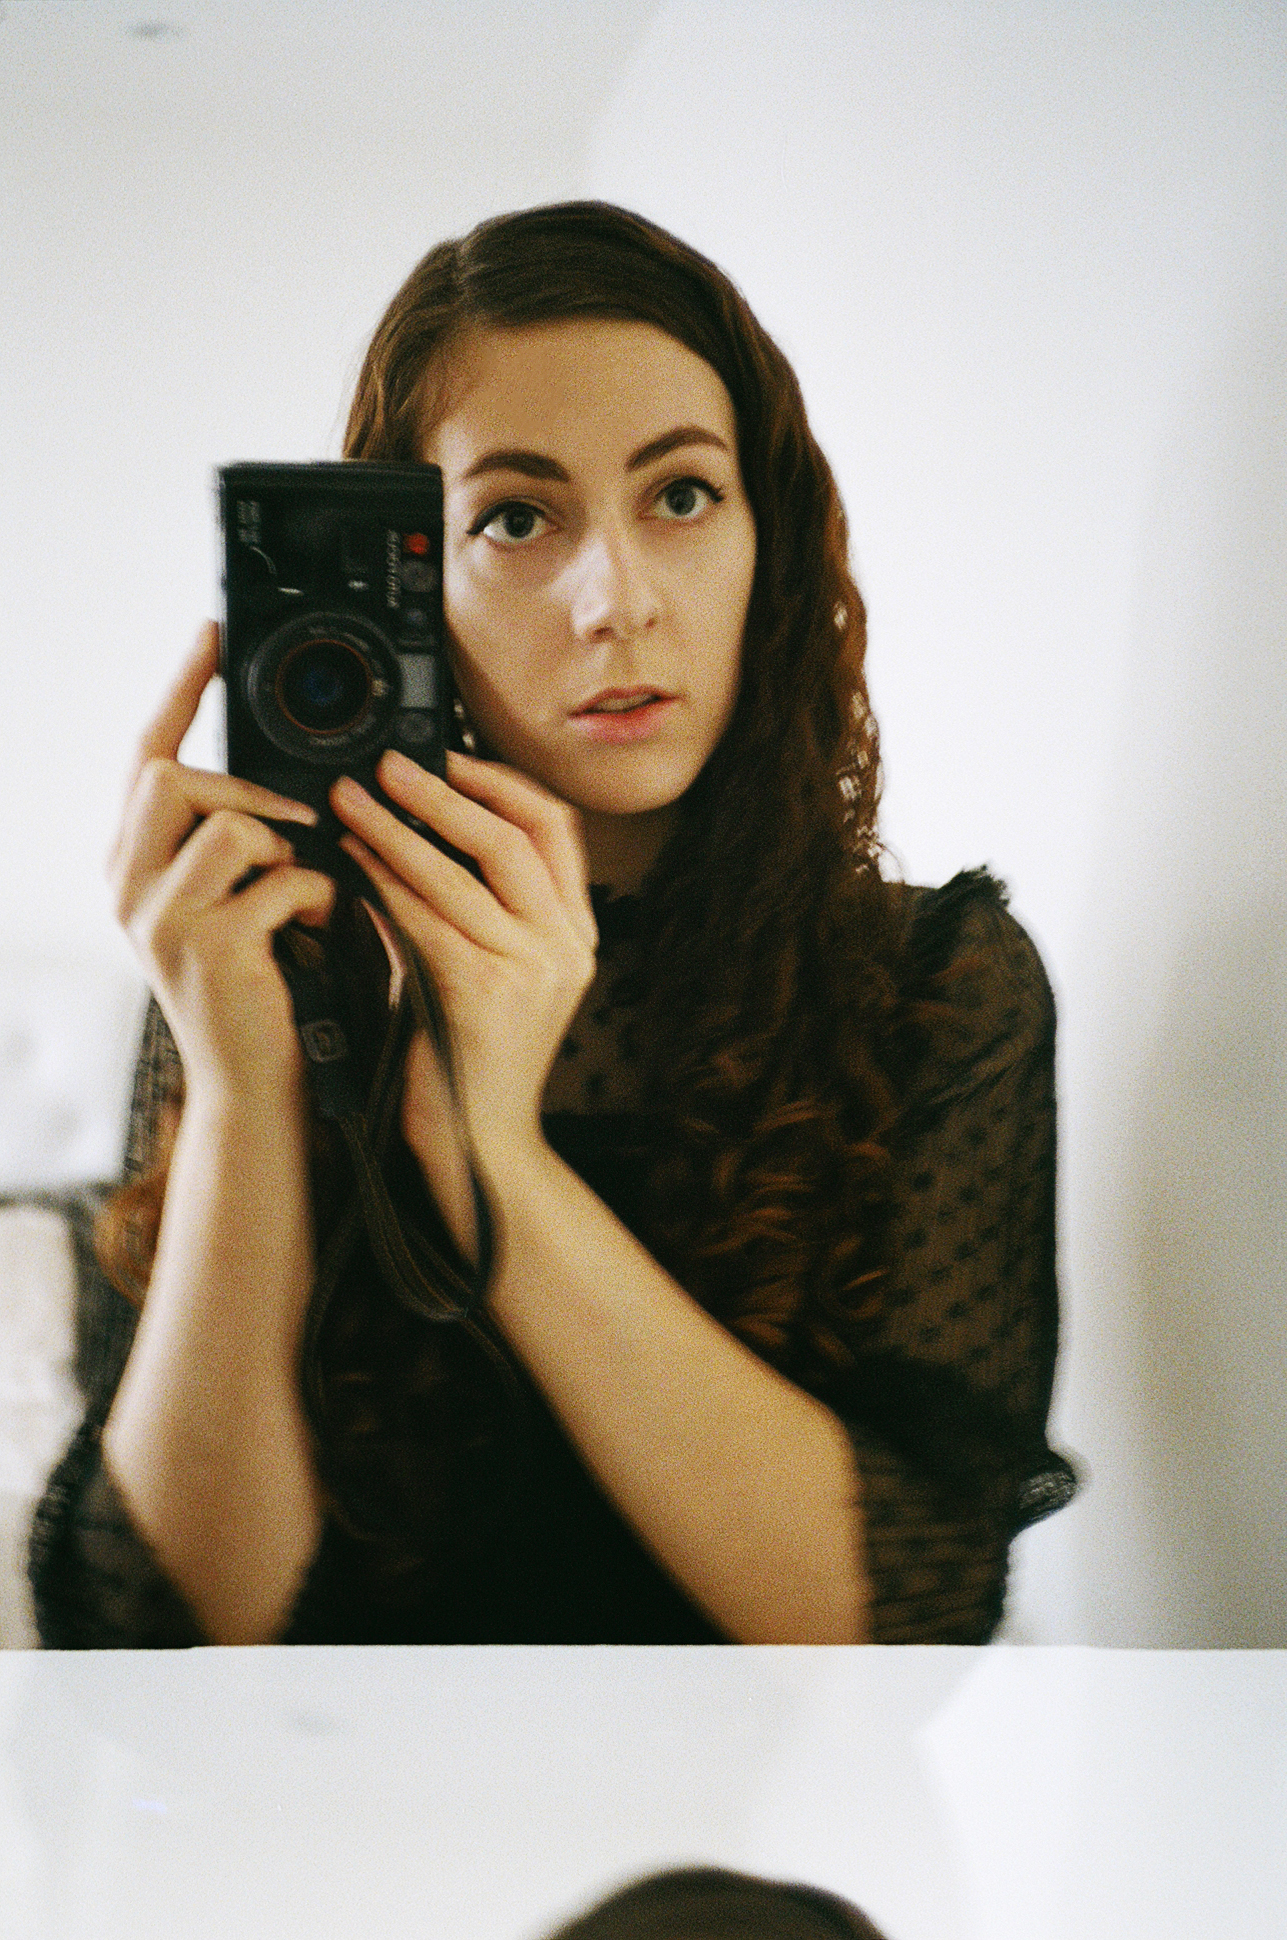 35mm film self-portrait by Lithuanian photographer Ailera Stone